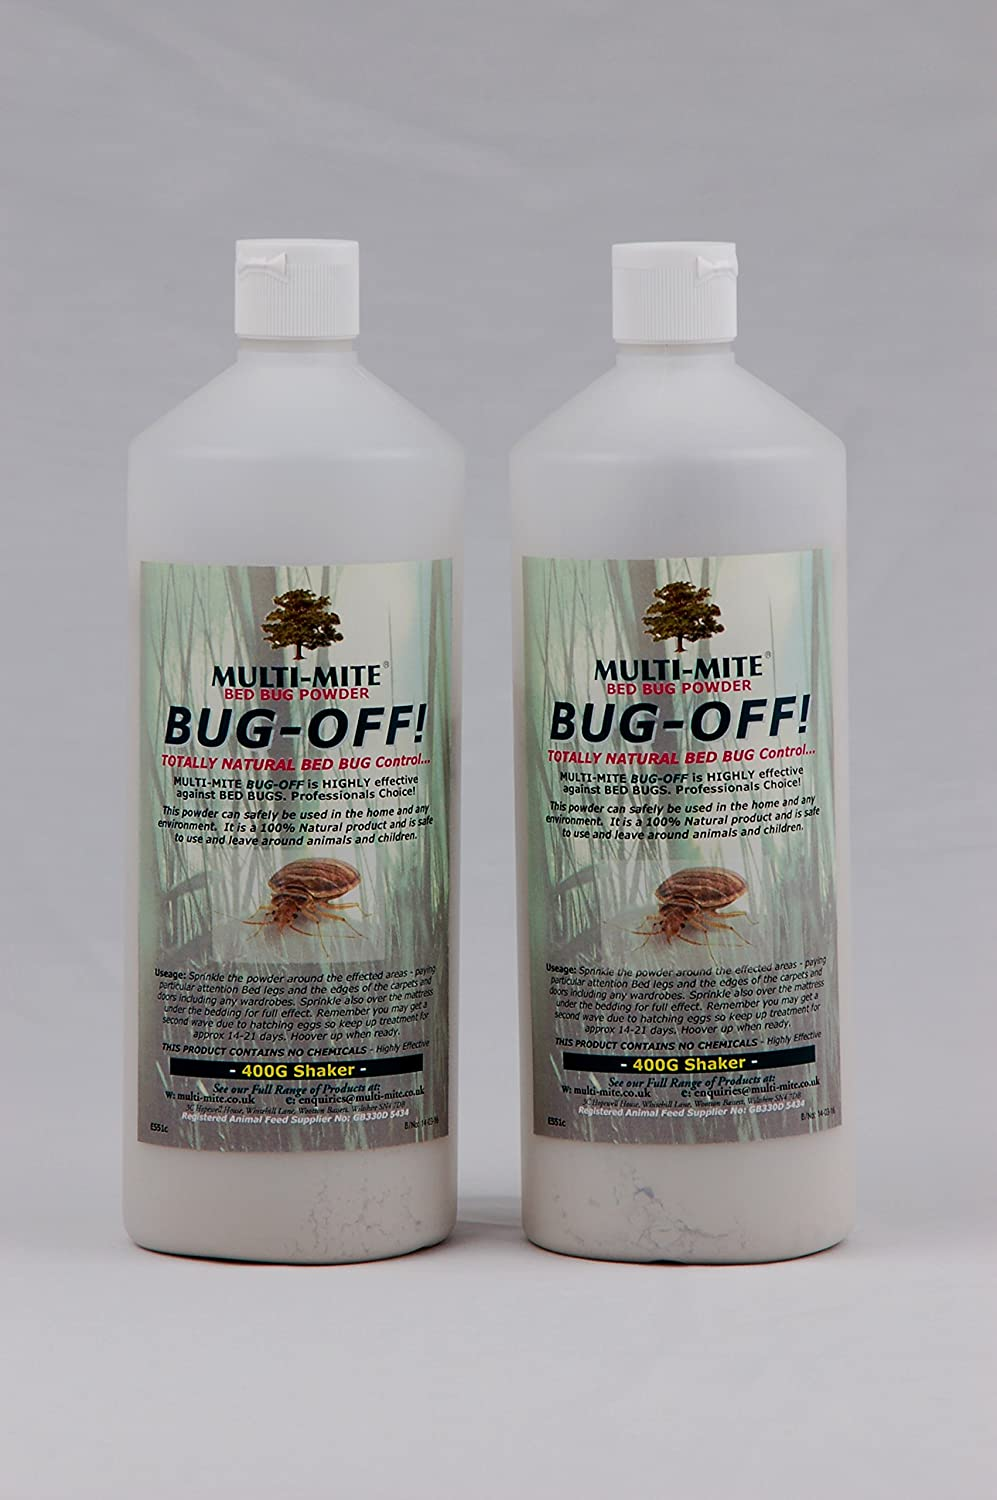 Bed Bug Powder - BUG-OFF - TWIN PACK 2 x 400GRAM SHAKER Multi-Mite® - FREE SHIPPING! MM-SHKR